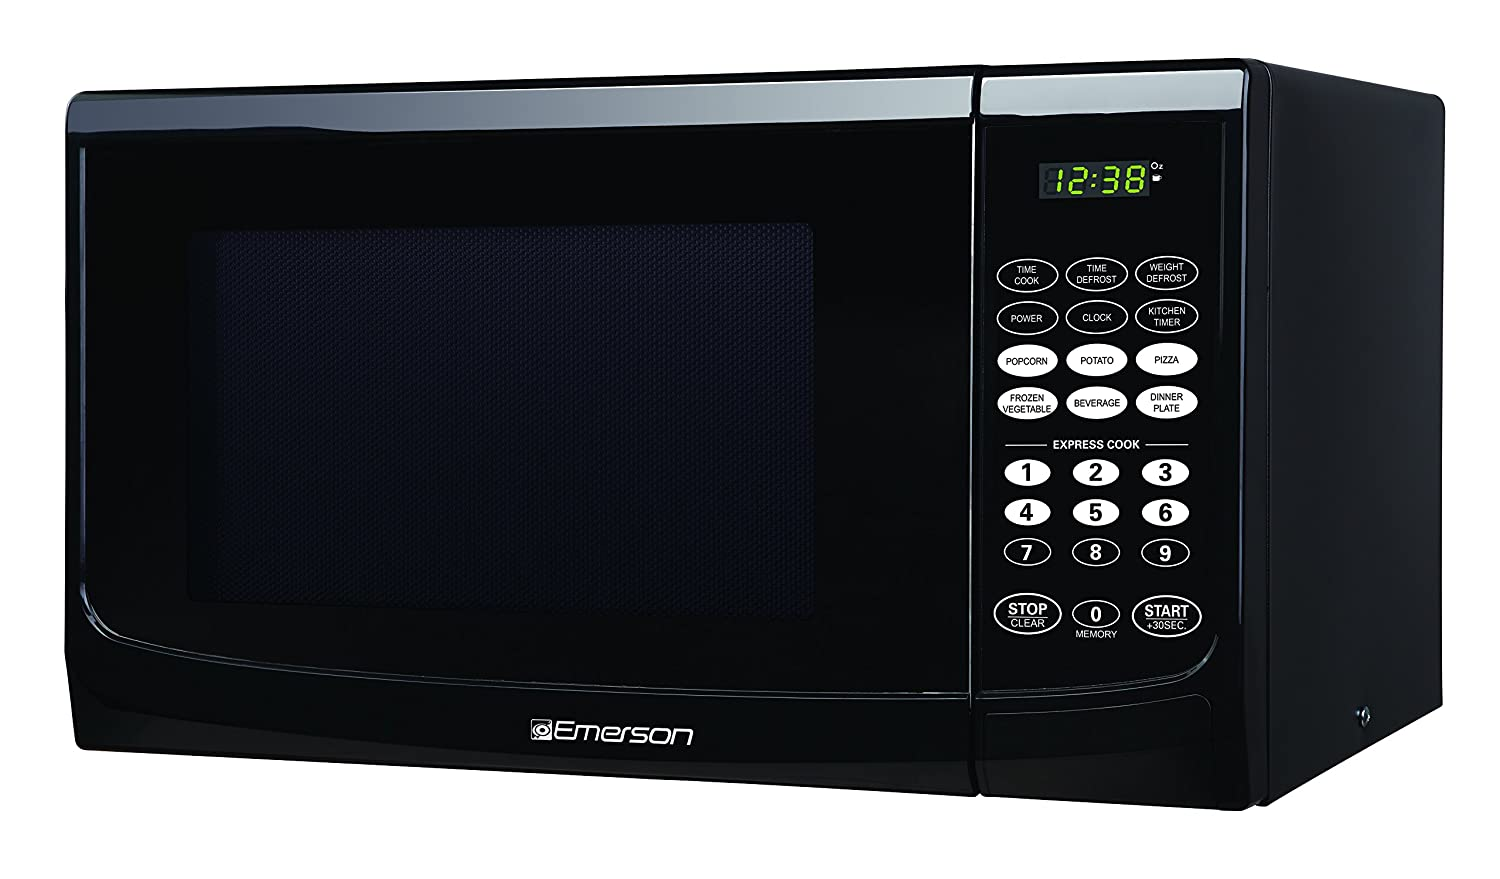 Emerson 0.9 CU. FT. 900 Watt, Touch Control, Black Microwave Oven, MW9255B